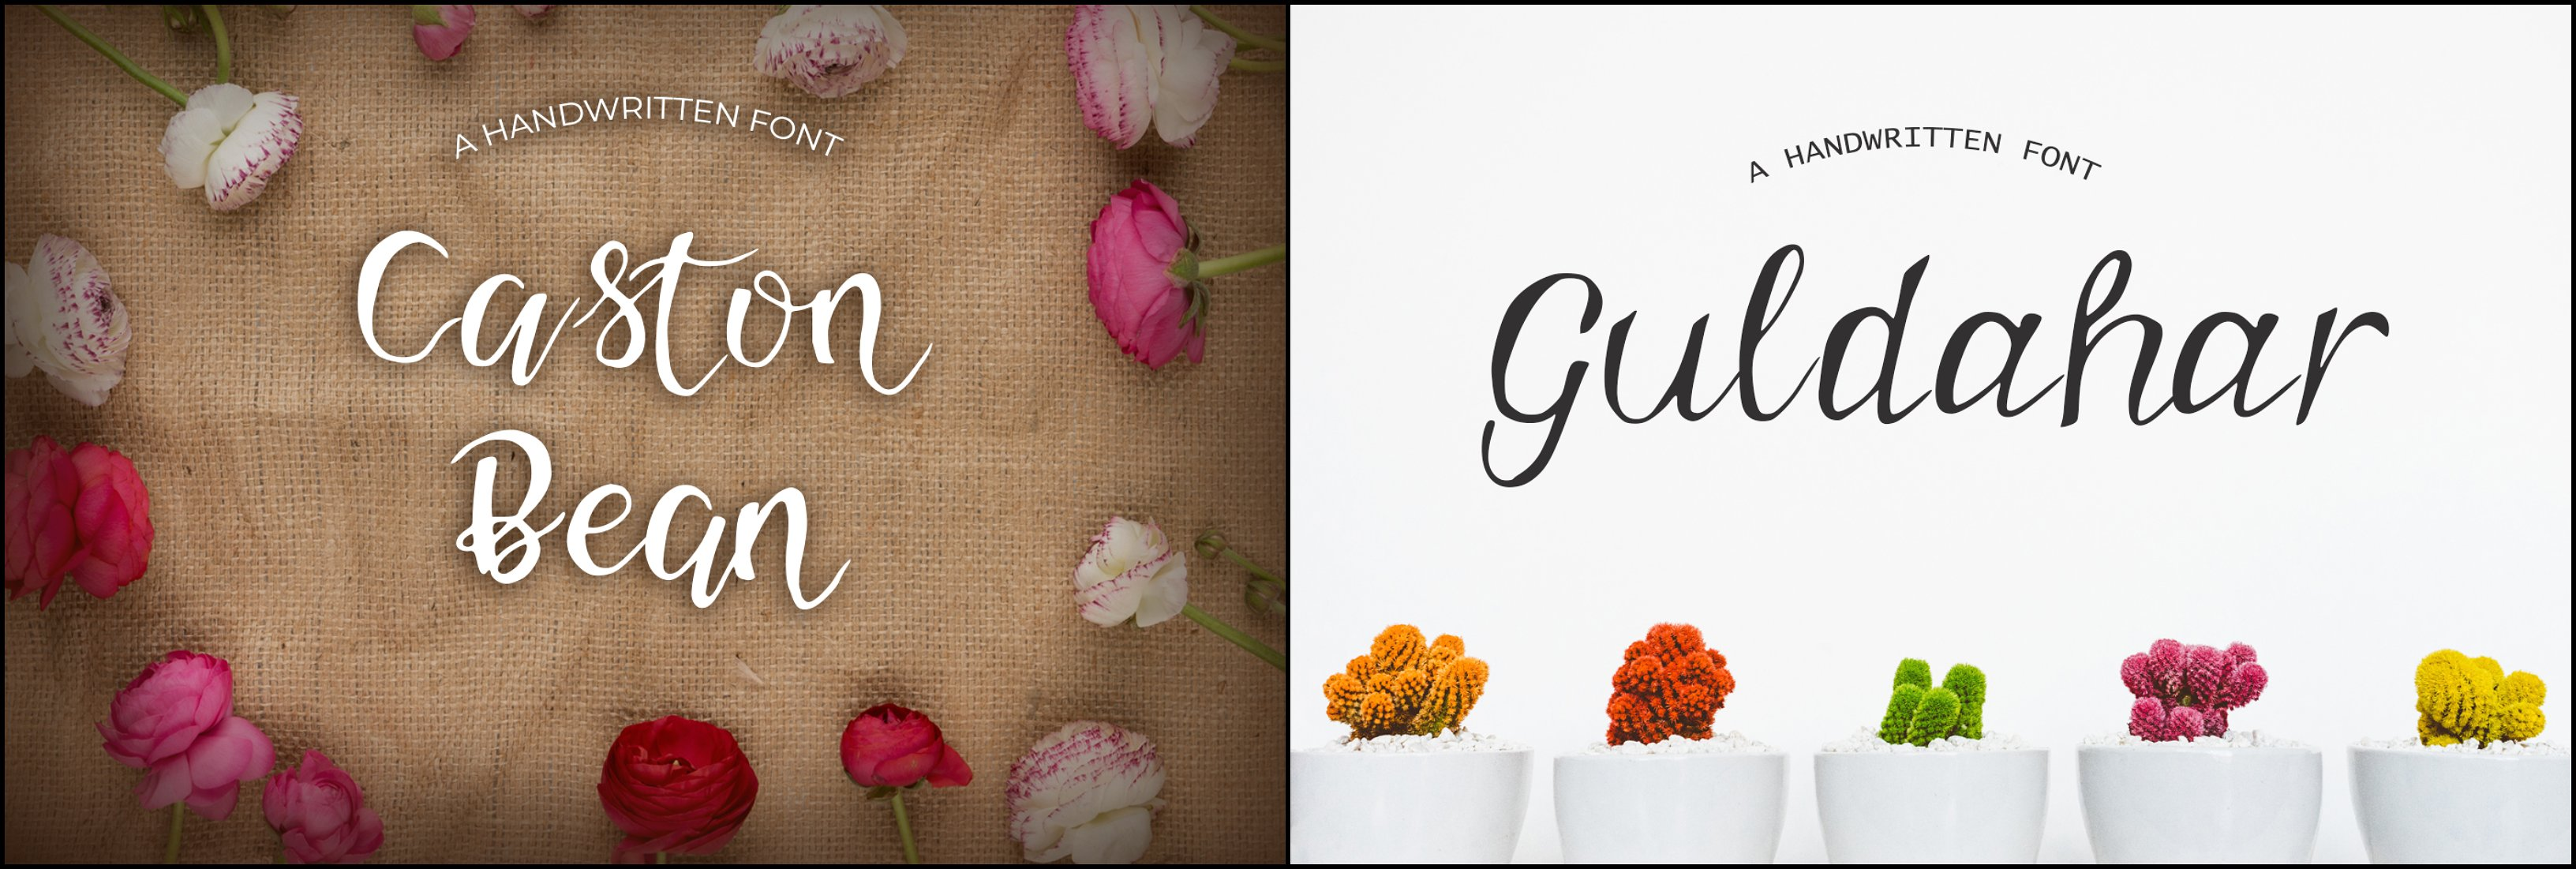 15 Creative Handmade Fonts - $19 ONLY - 5